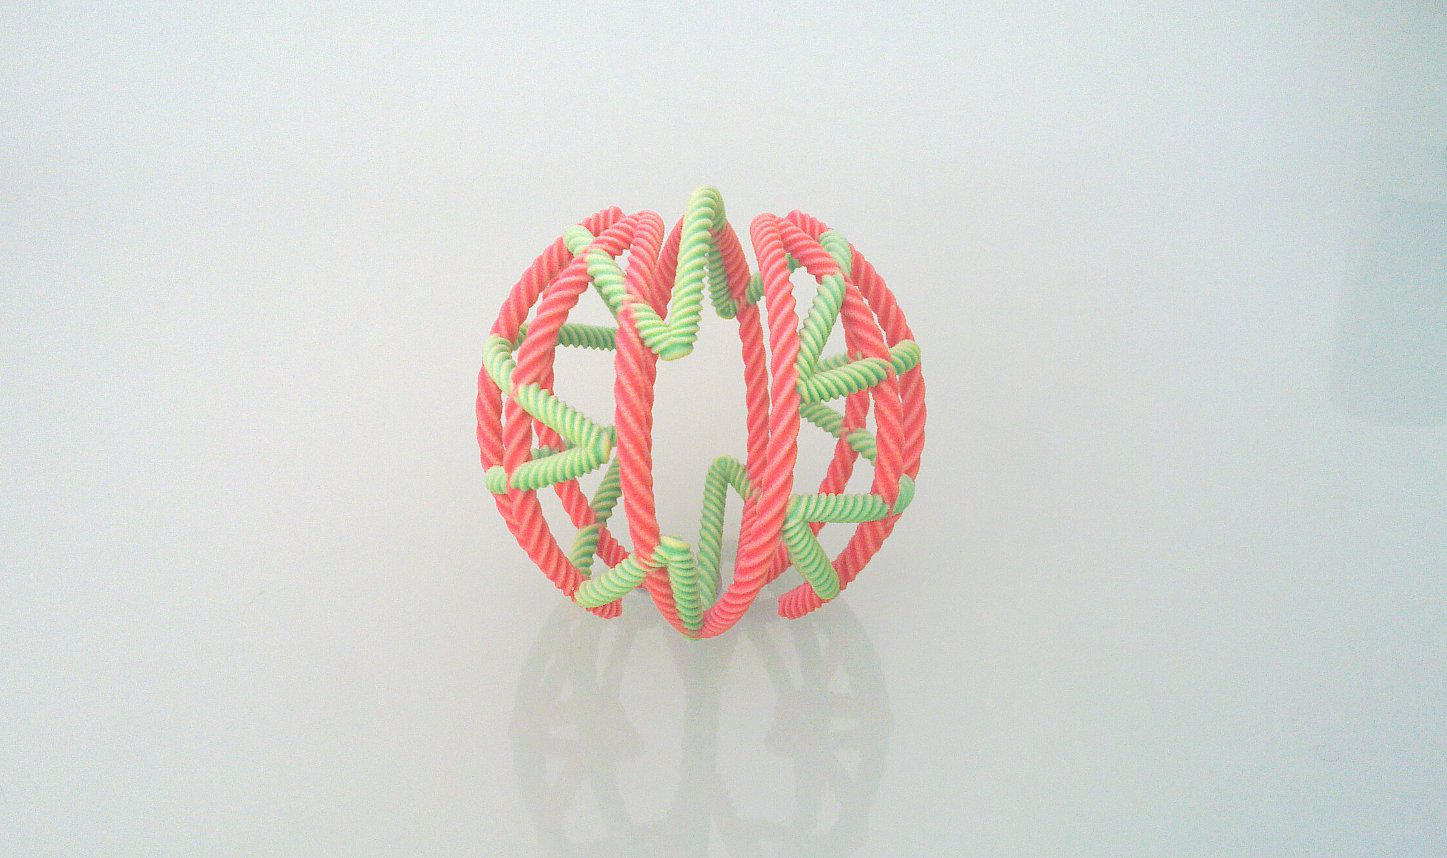 Sandstone String Ball 2 by llewelld